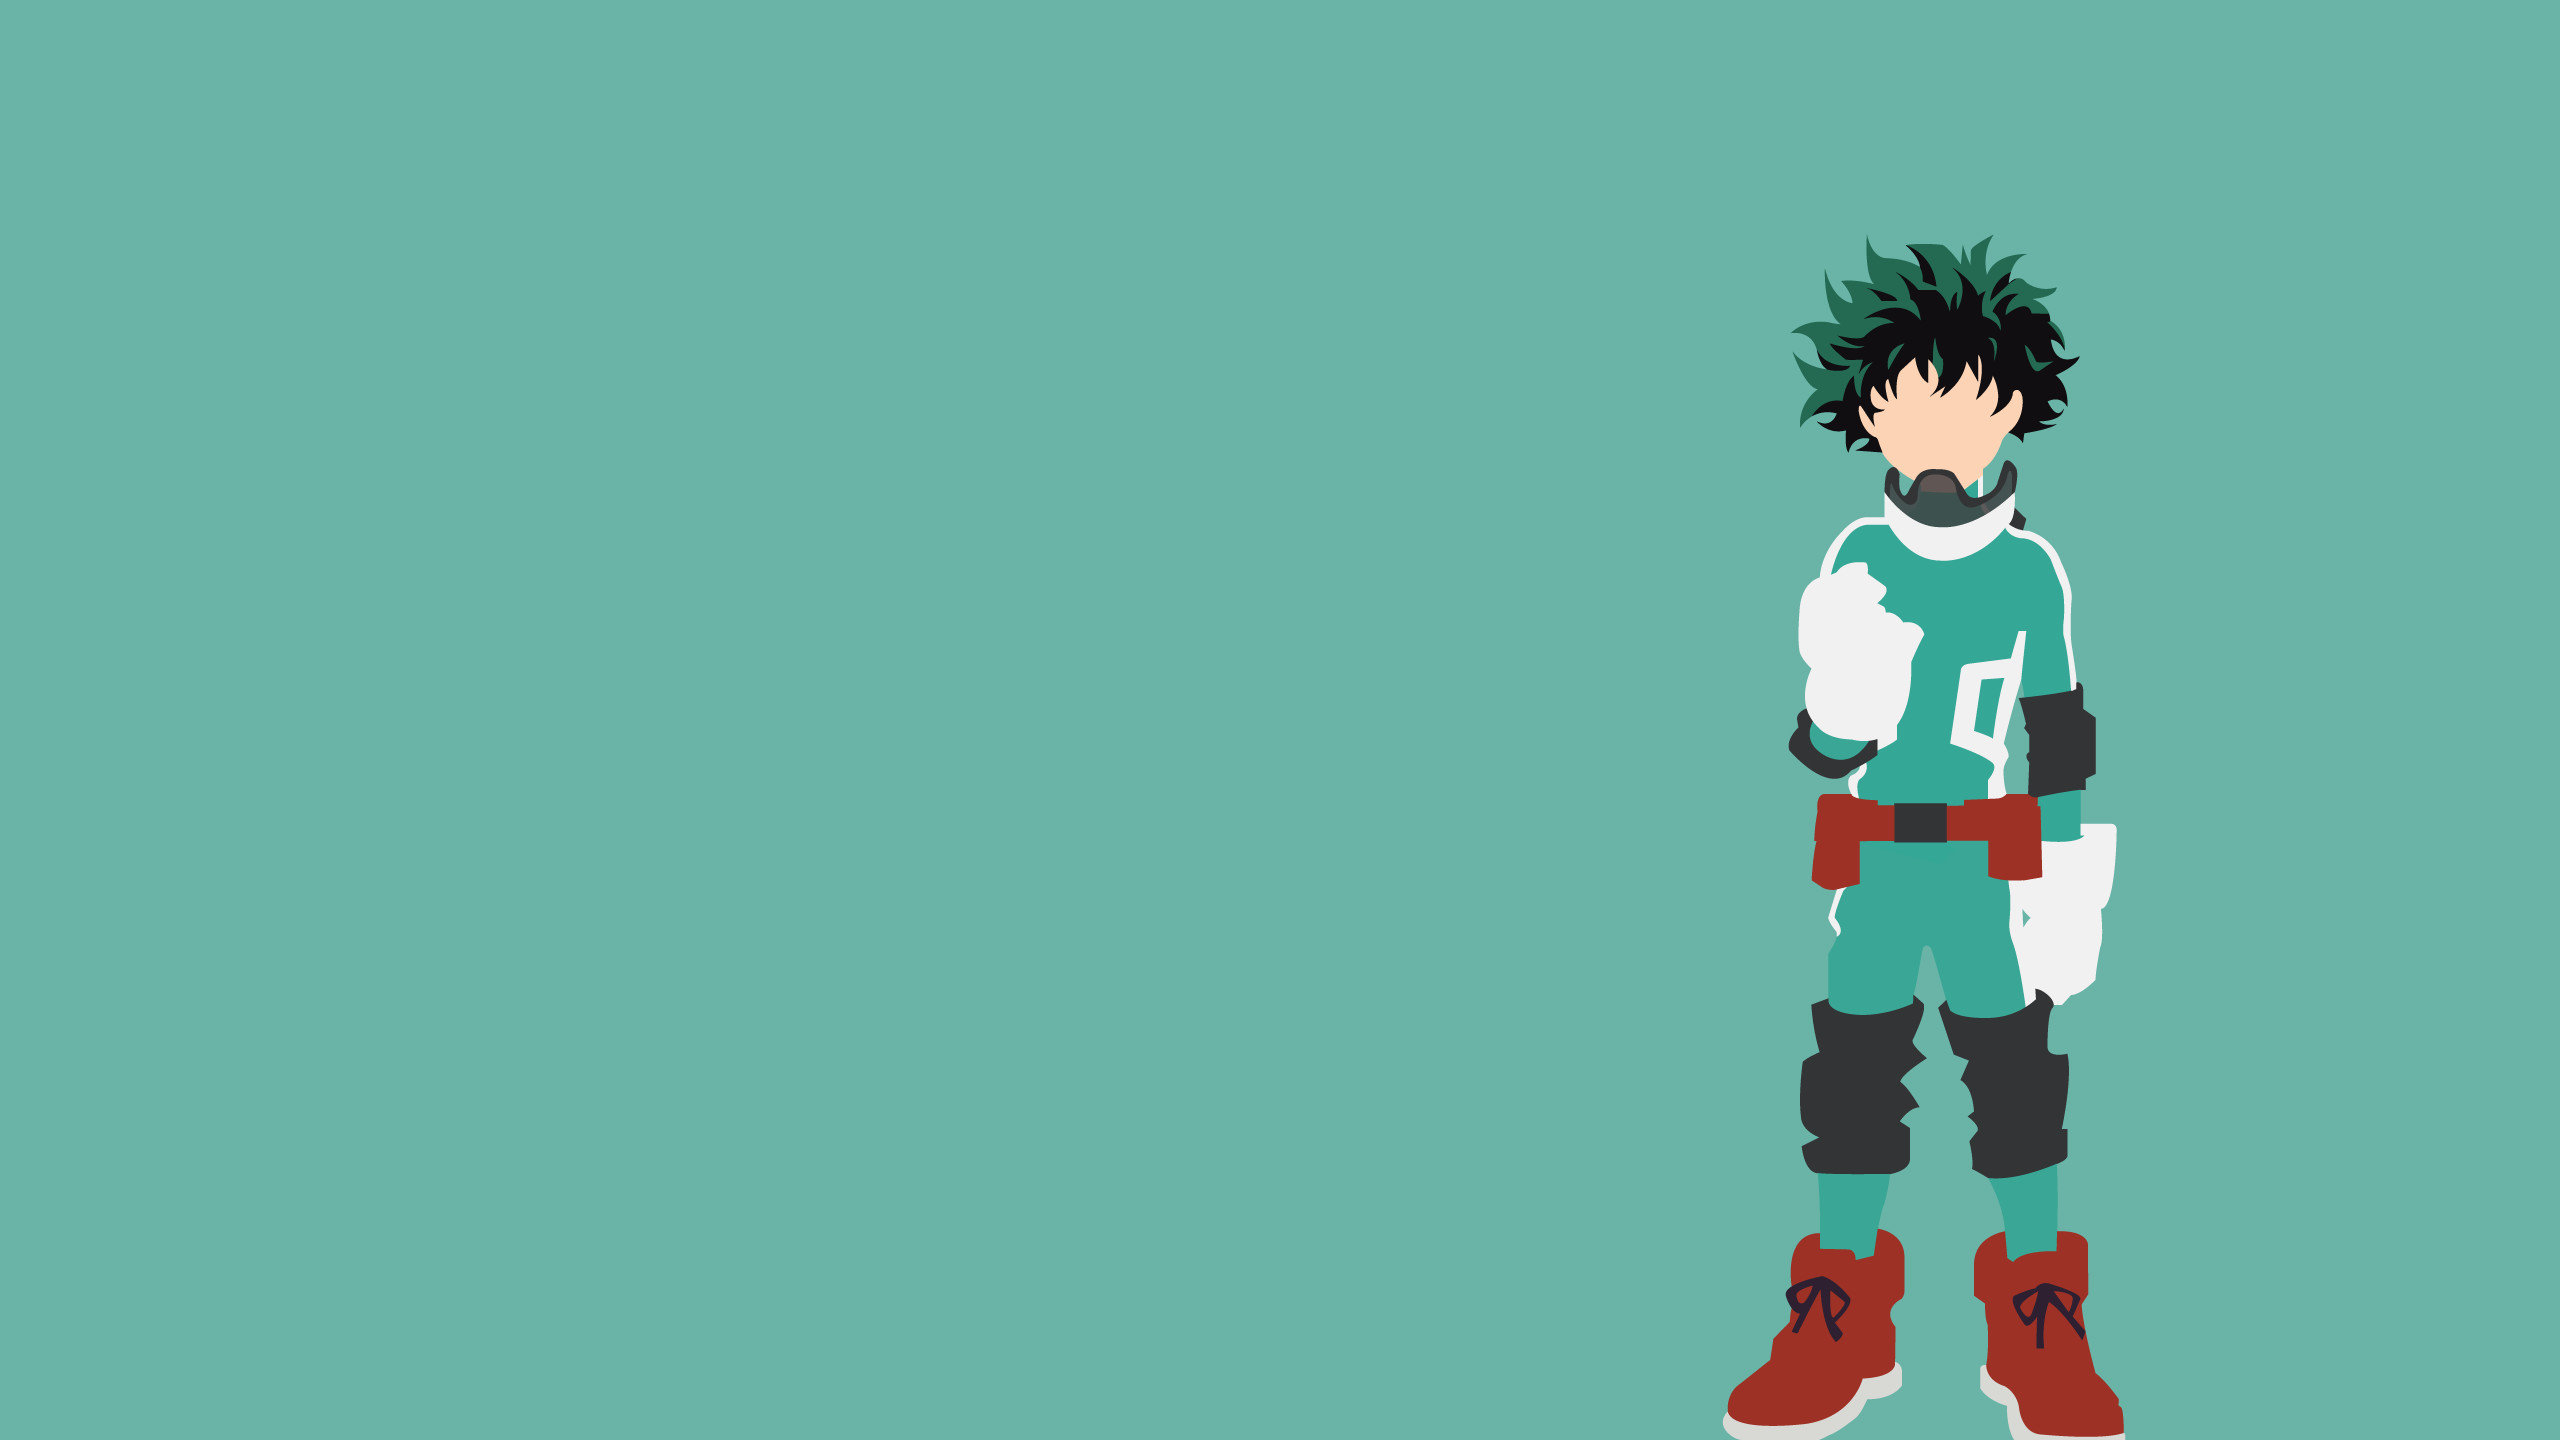 Awesome Boku No Hero Academia free wallpaper ID:192778 for hd 2560x1440 desktop